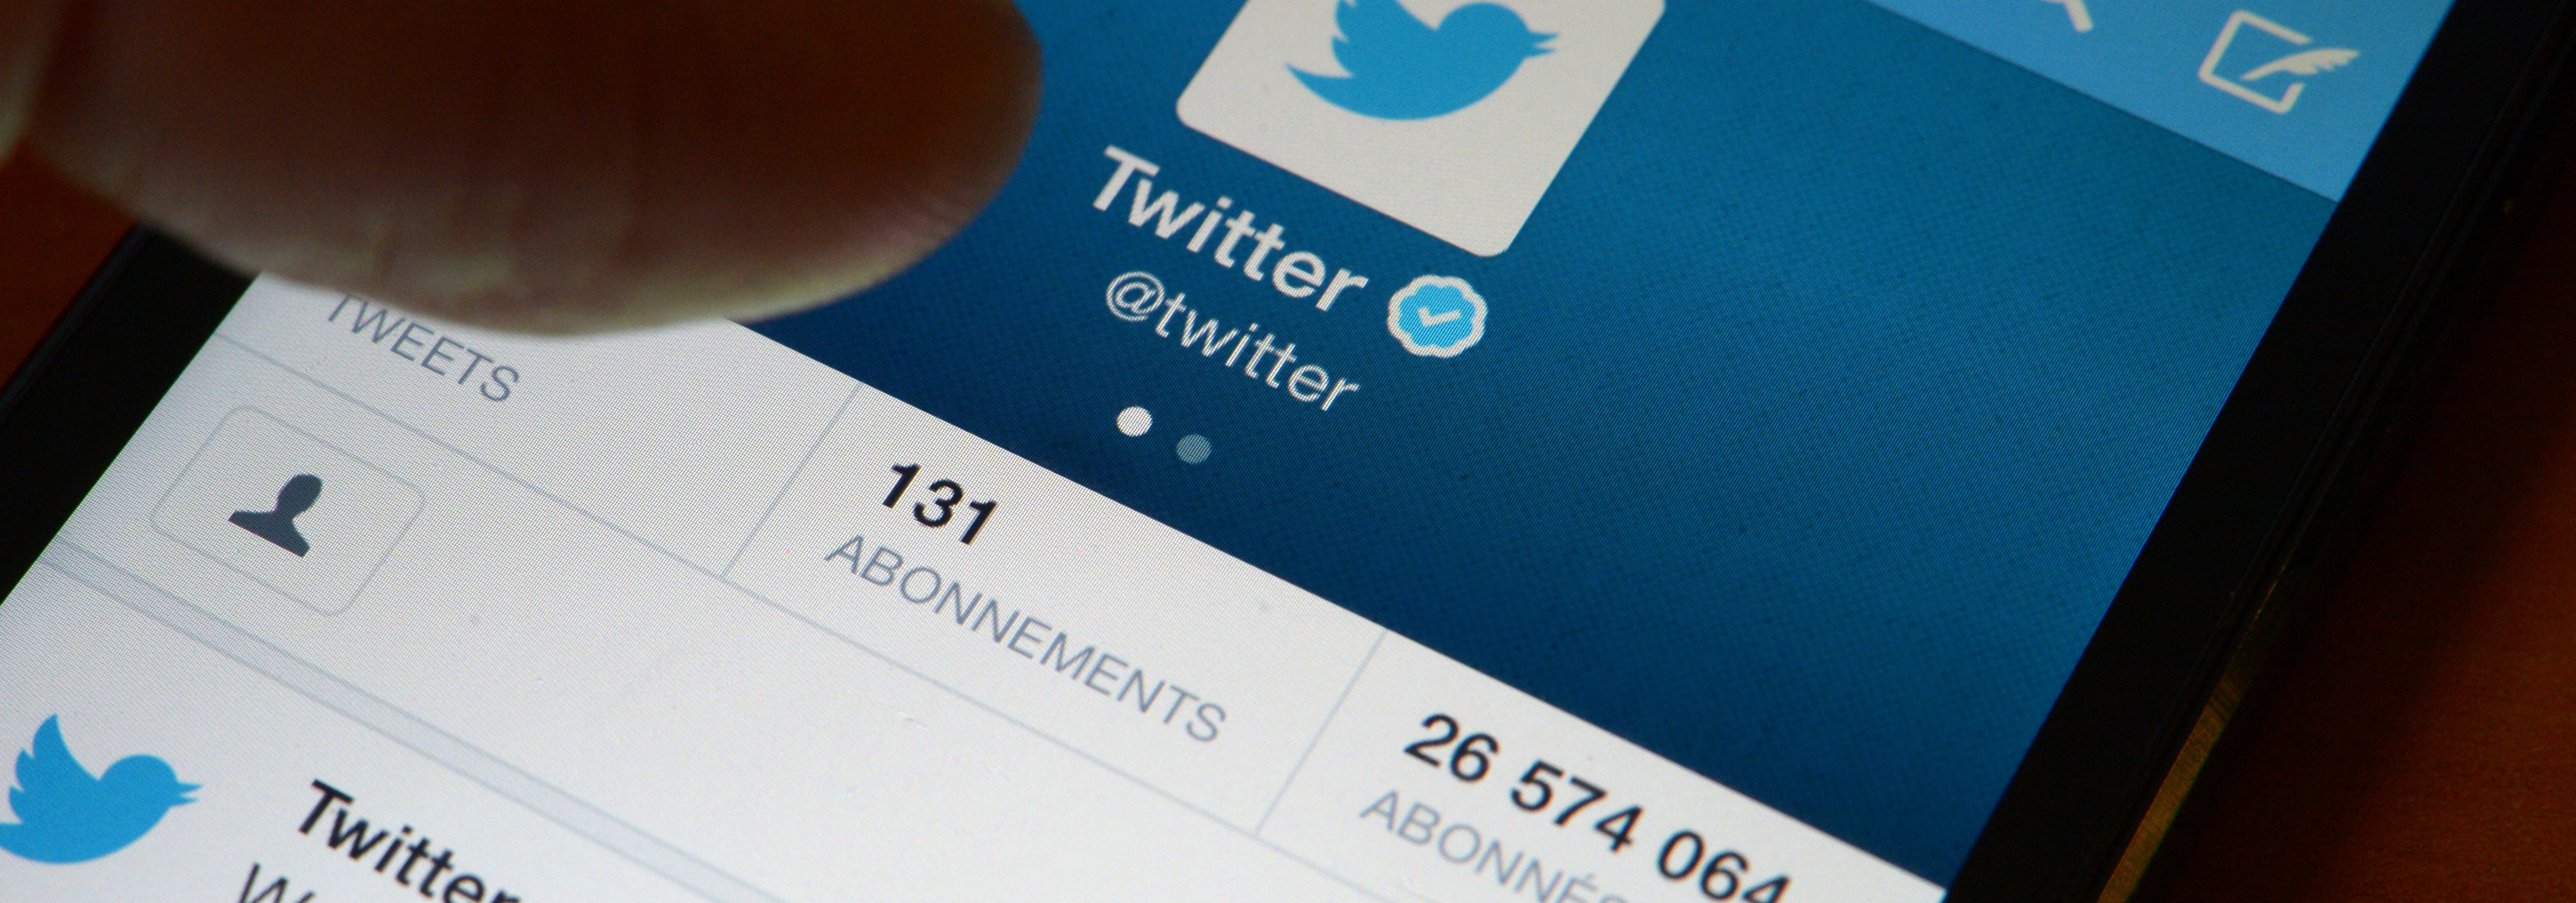 Twitter's mobile now let you embed tweets inside tweets